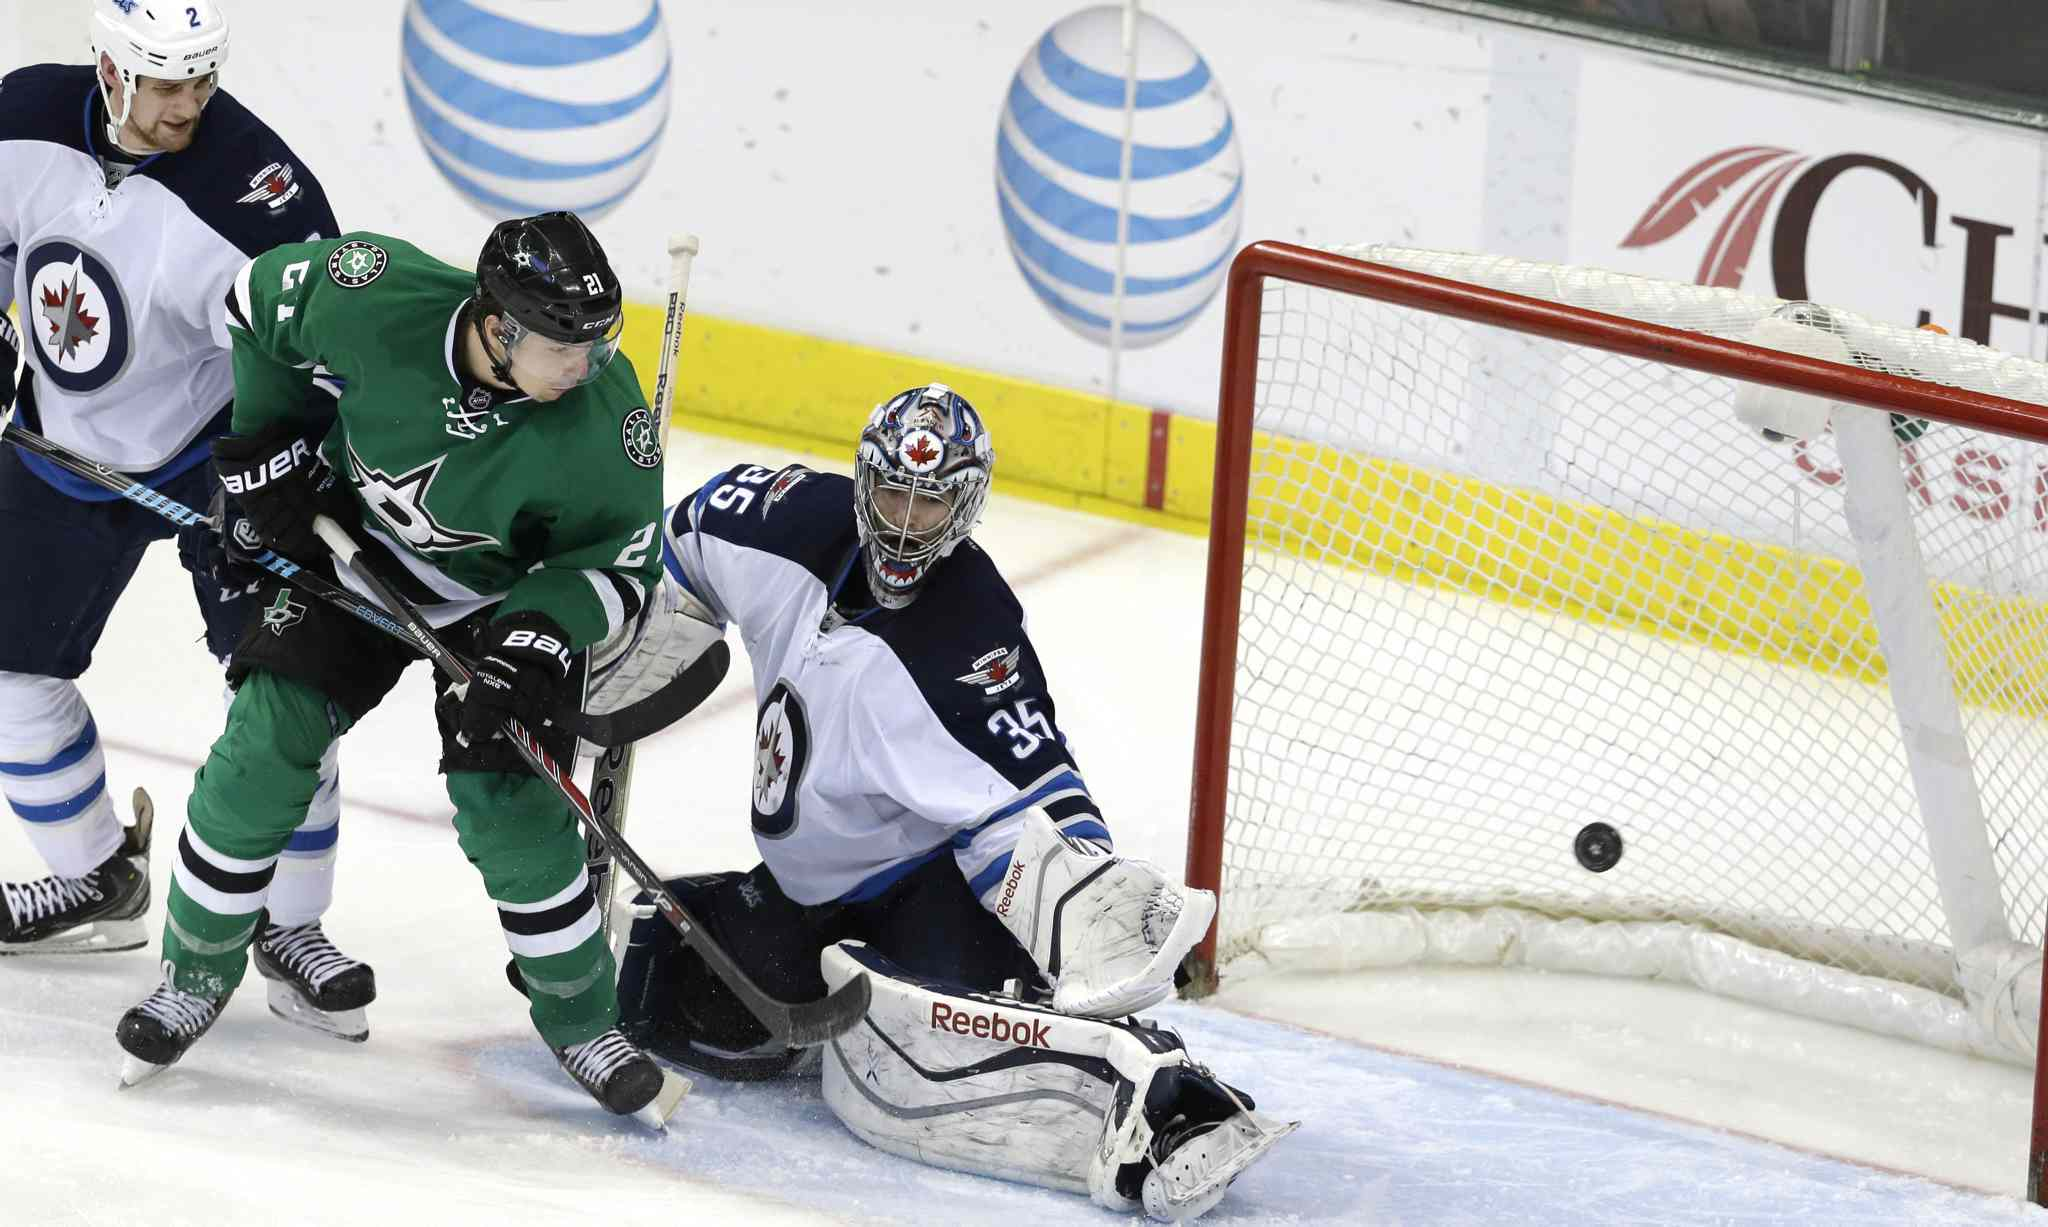 Dallas Stars left-winger Antoine Roussel (21) watches his shot go wide of  the net against Winnipeg Jets goalie Al Montoya and defenceman Adam Pardy during the second period.